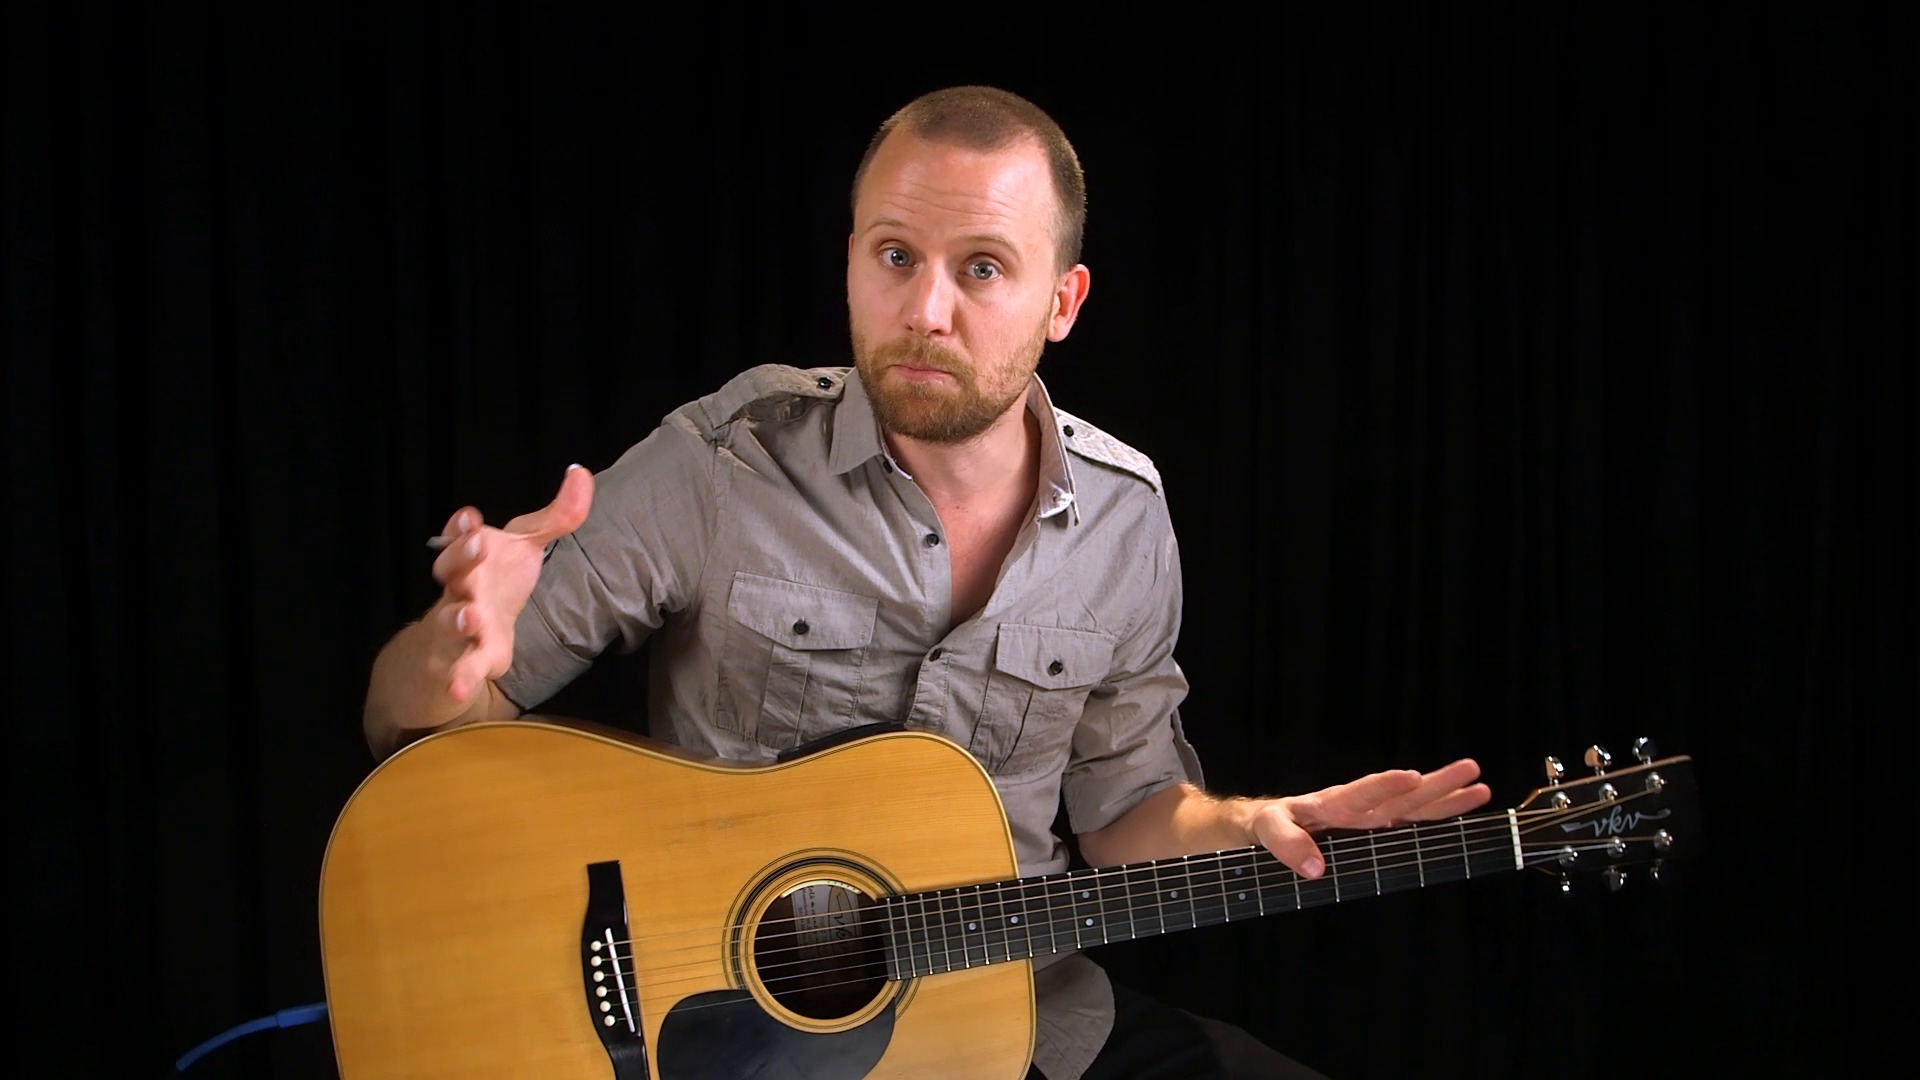 Guitar lessons intro one man country band